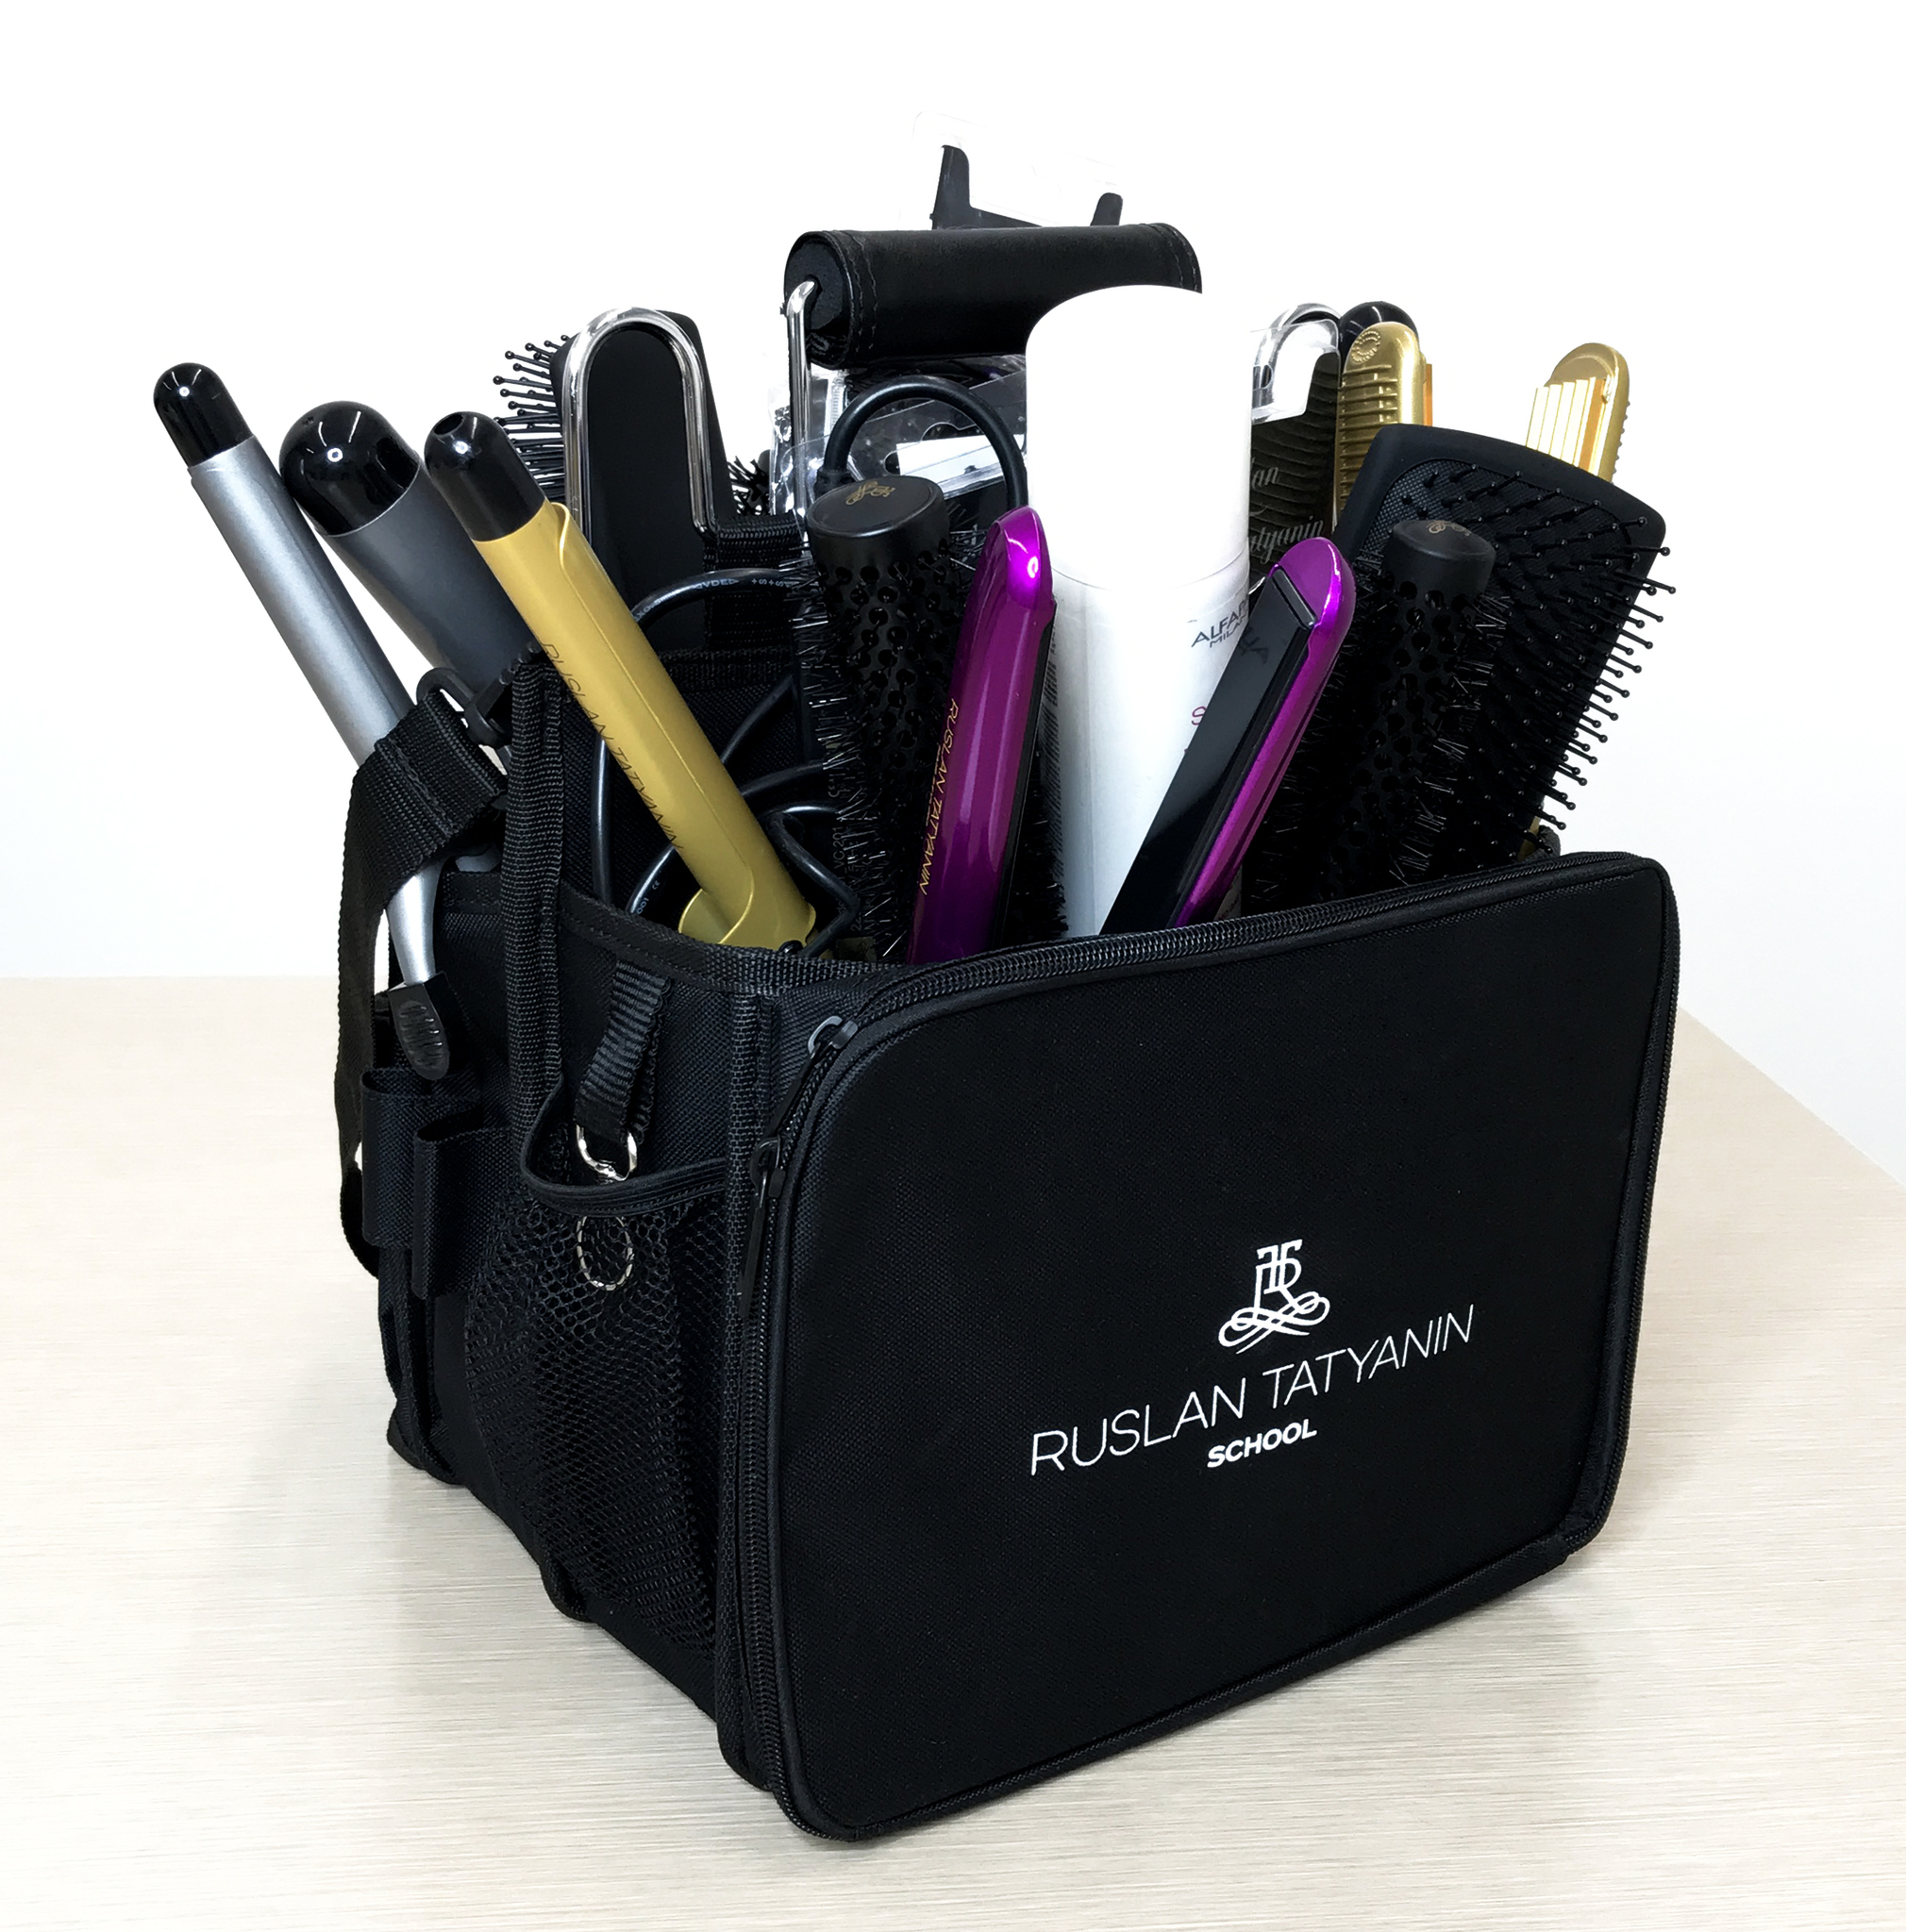 Bag for tools with Ruslan Tatyanin School logo